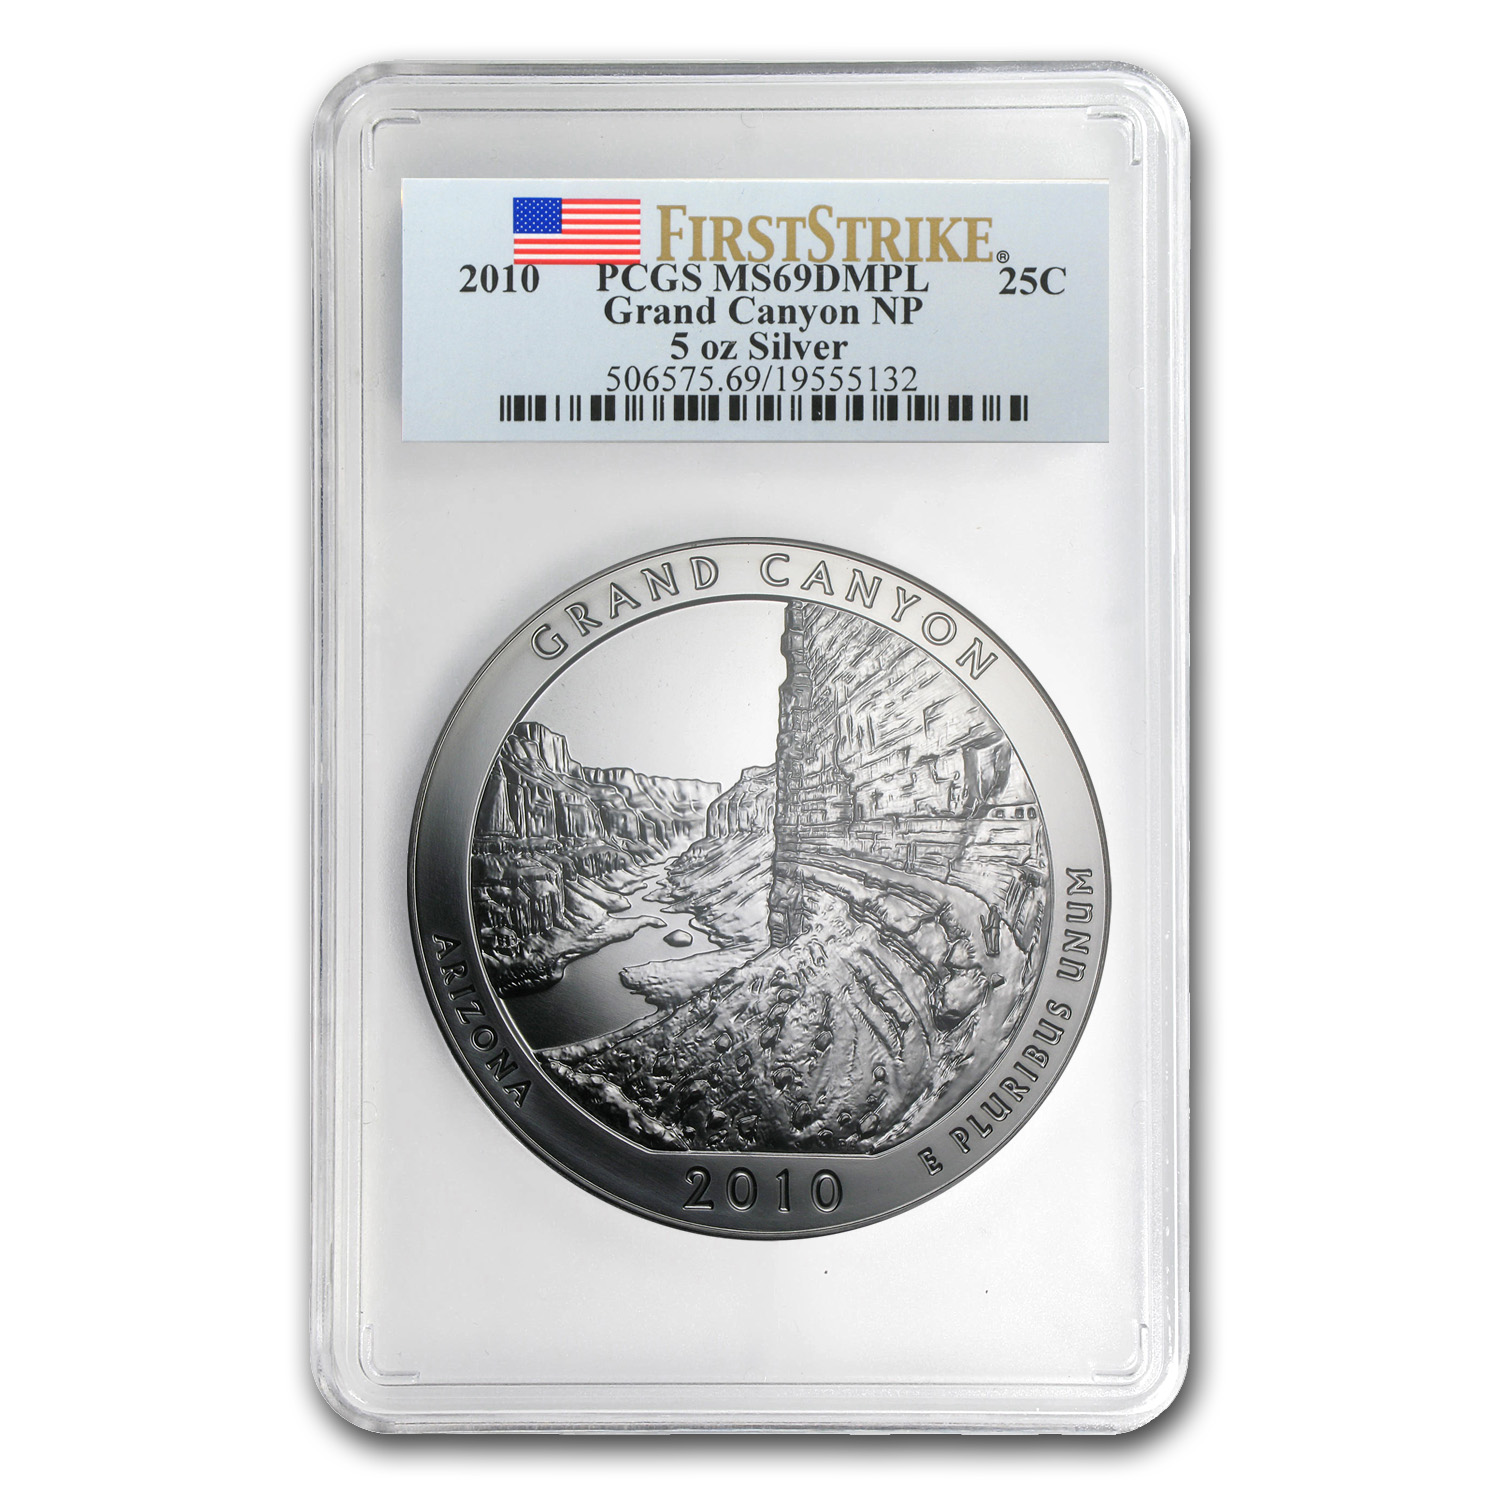 2010 5 oz Silver ATB Grand Canyon MS-69 DMPL PCGS (First Strike)